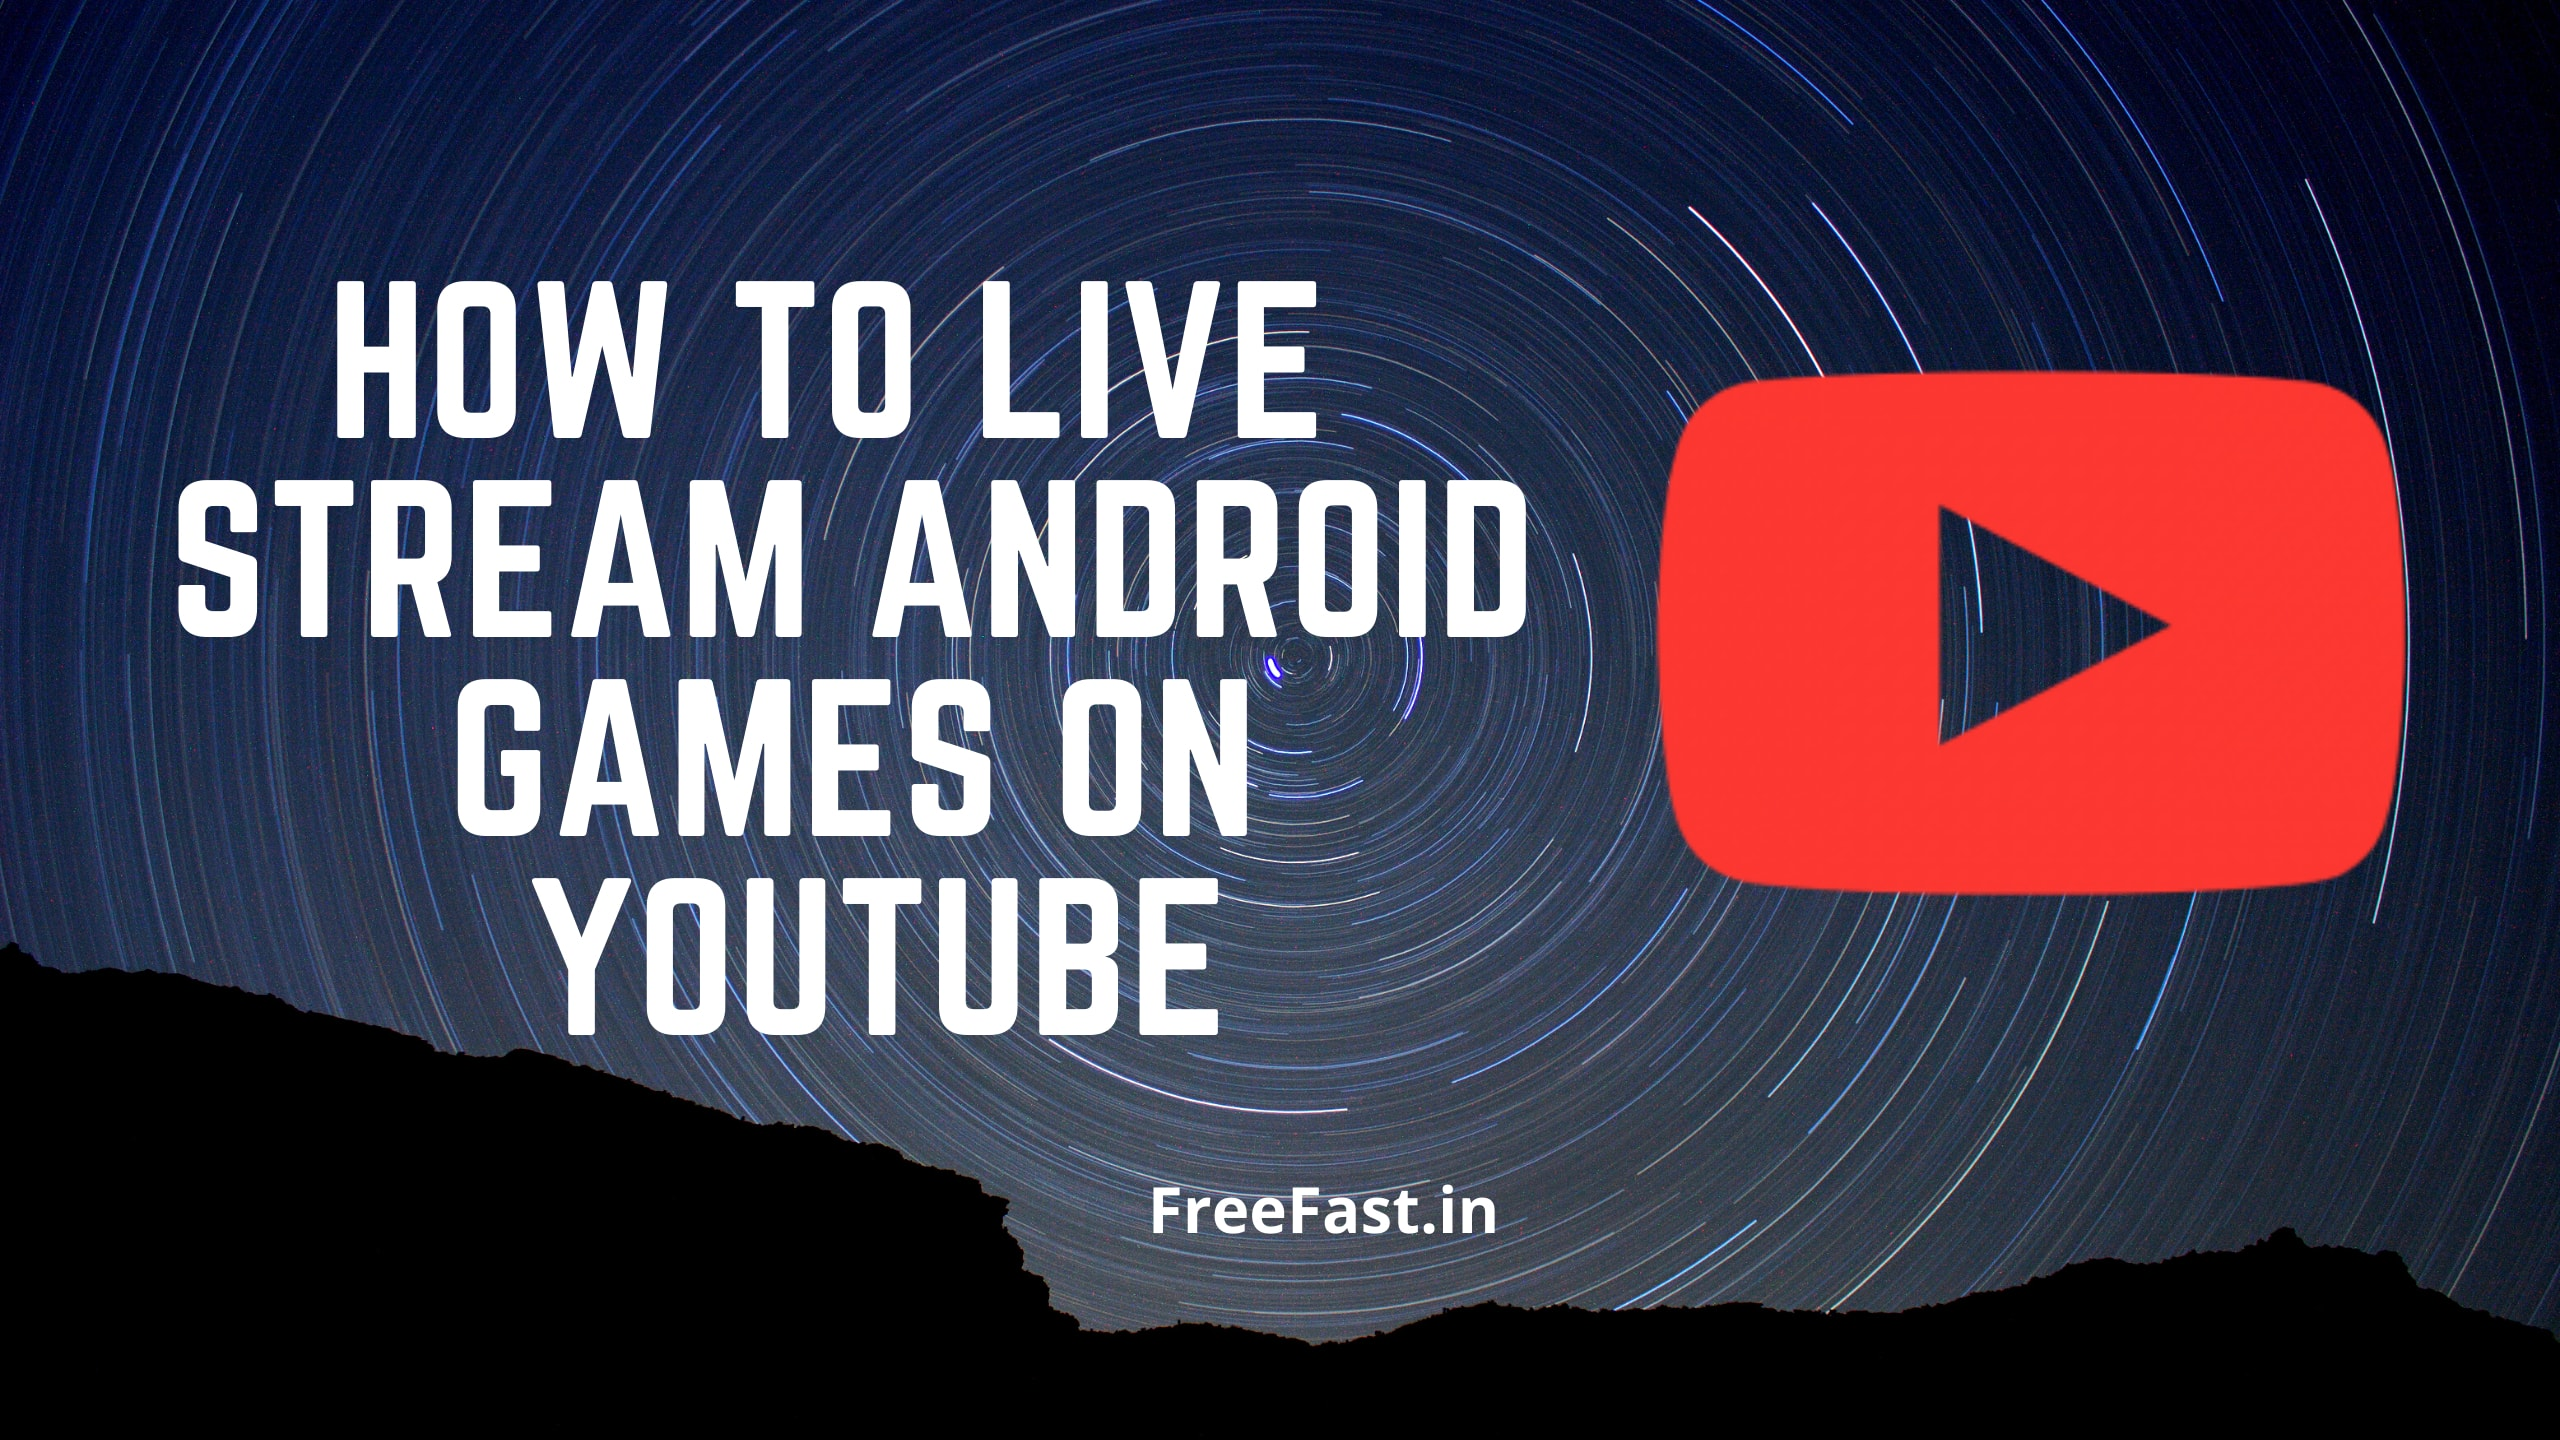 How To Live Stream Android Games on Youtube